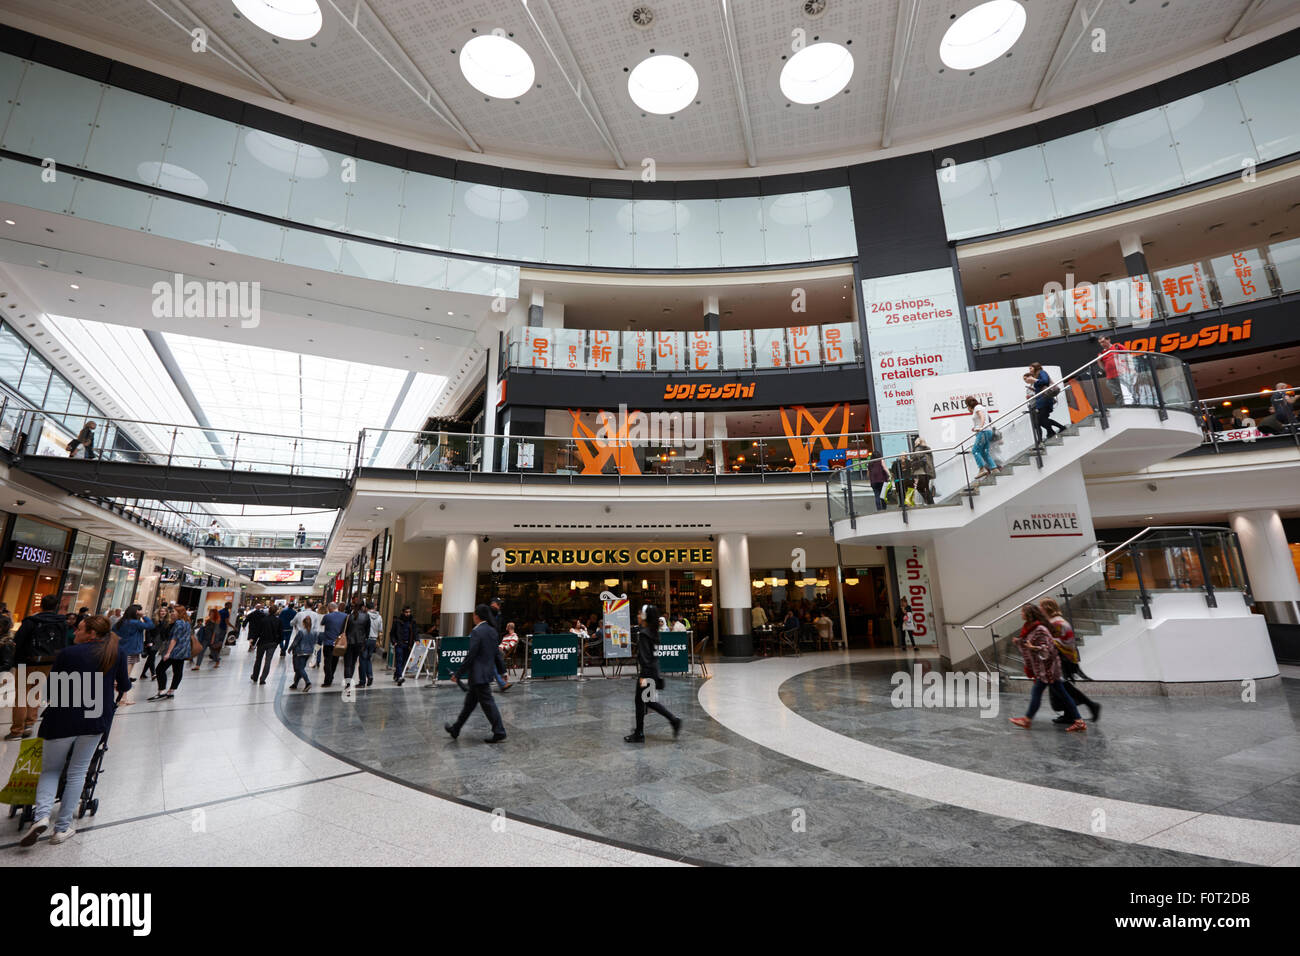 The arndale shopping centre Manchester England UK - Stock Image